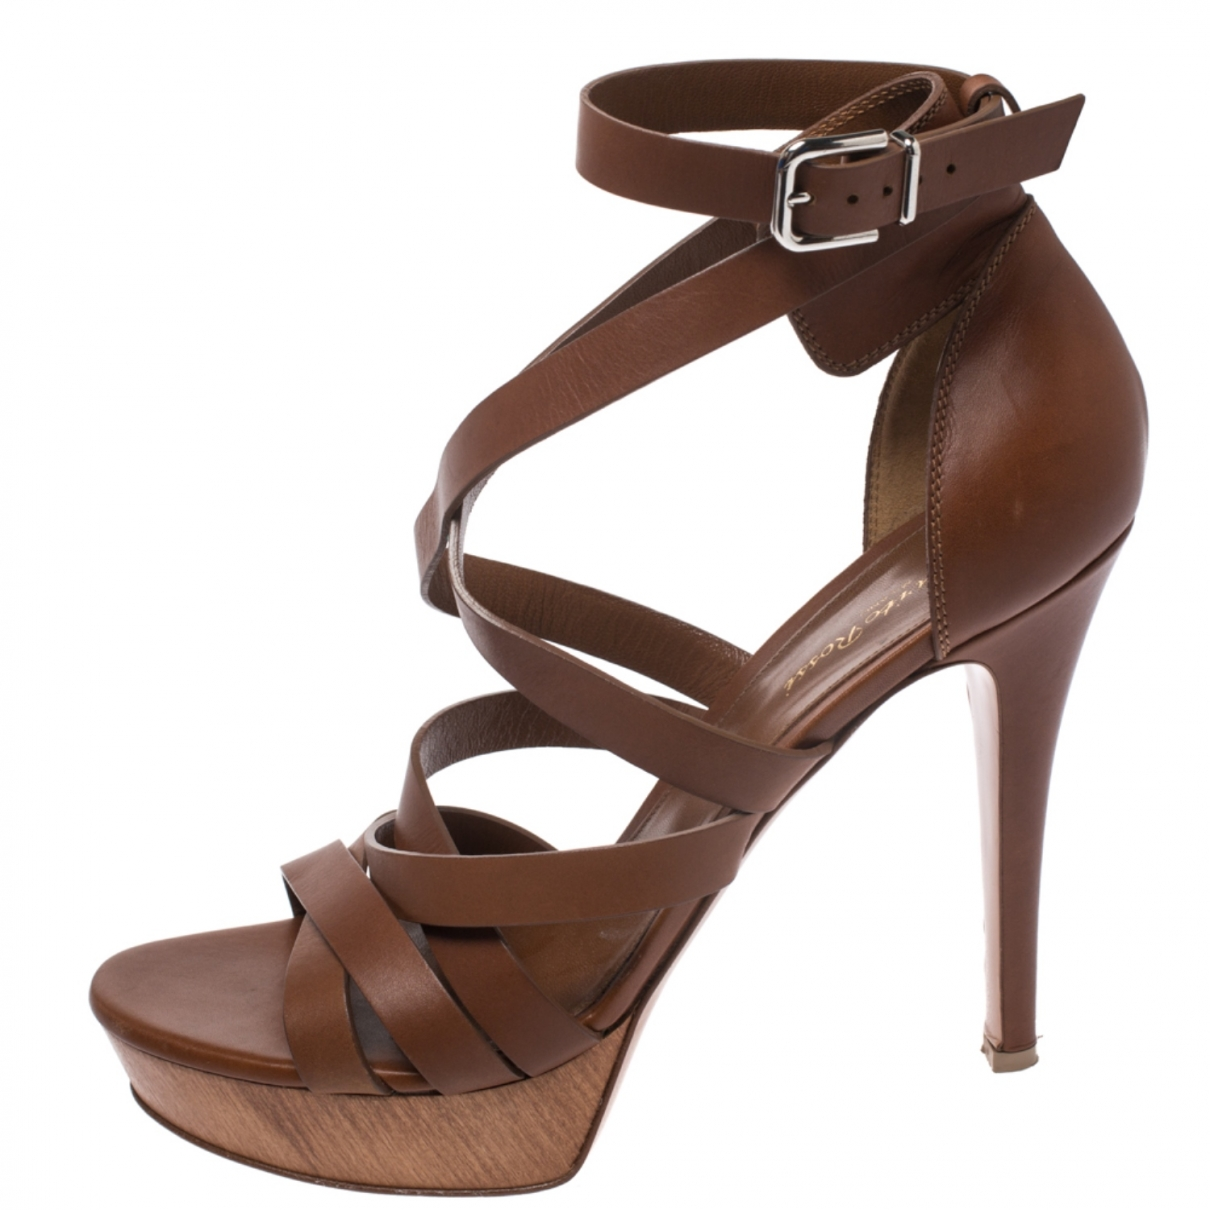 Gianvito Rossi \N Black Leather Sandals for Women 41 EU